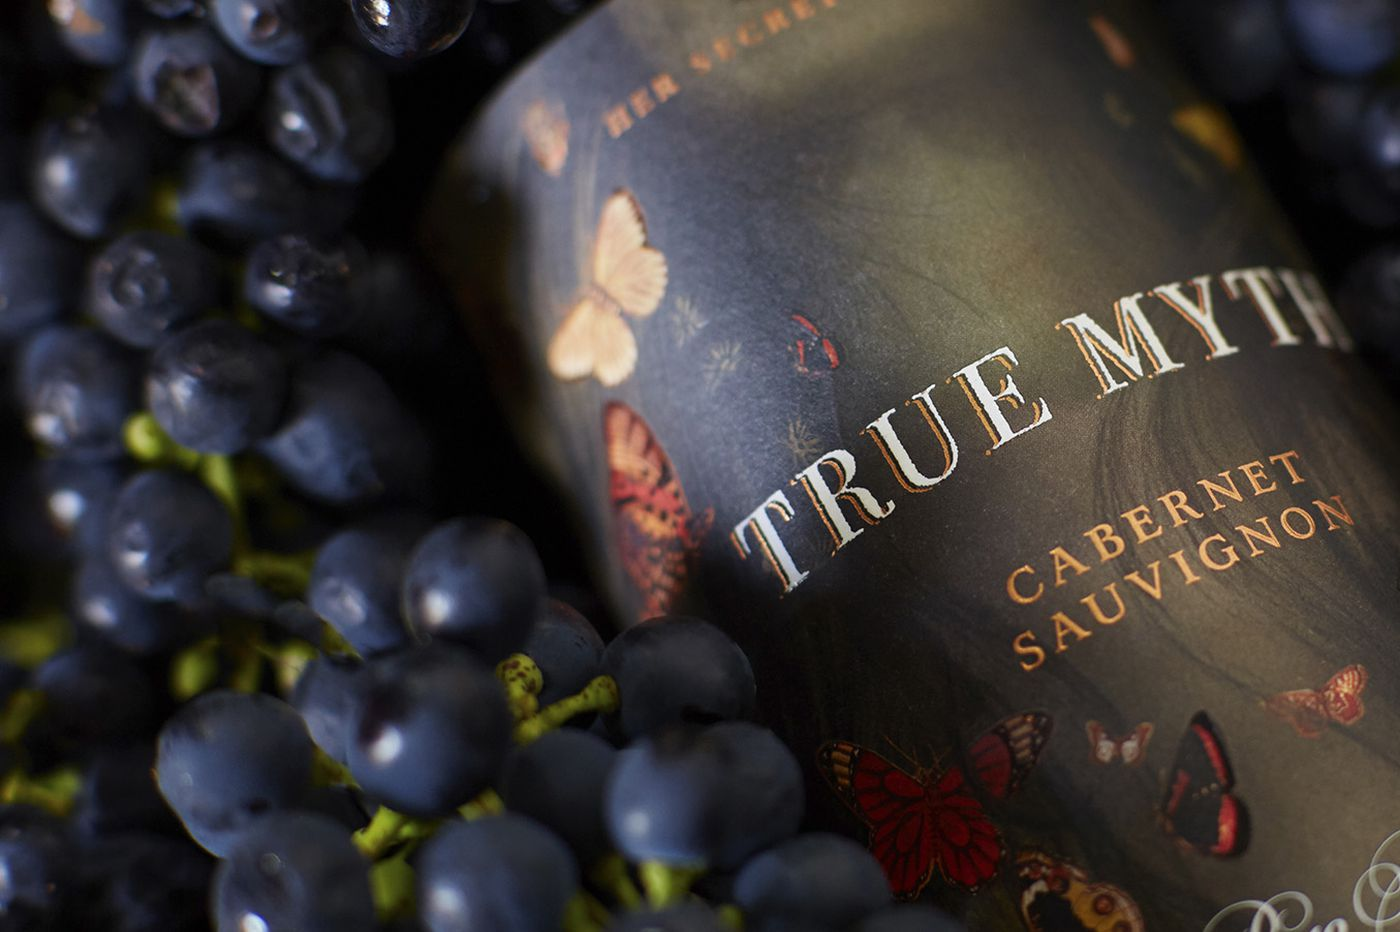 This Central California cabernet gives Napa Valley reds a run for their money